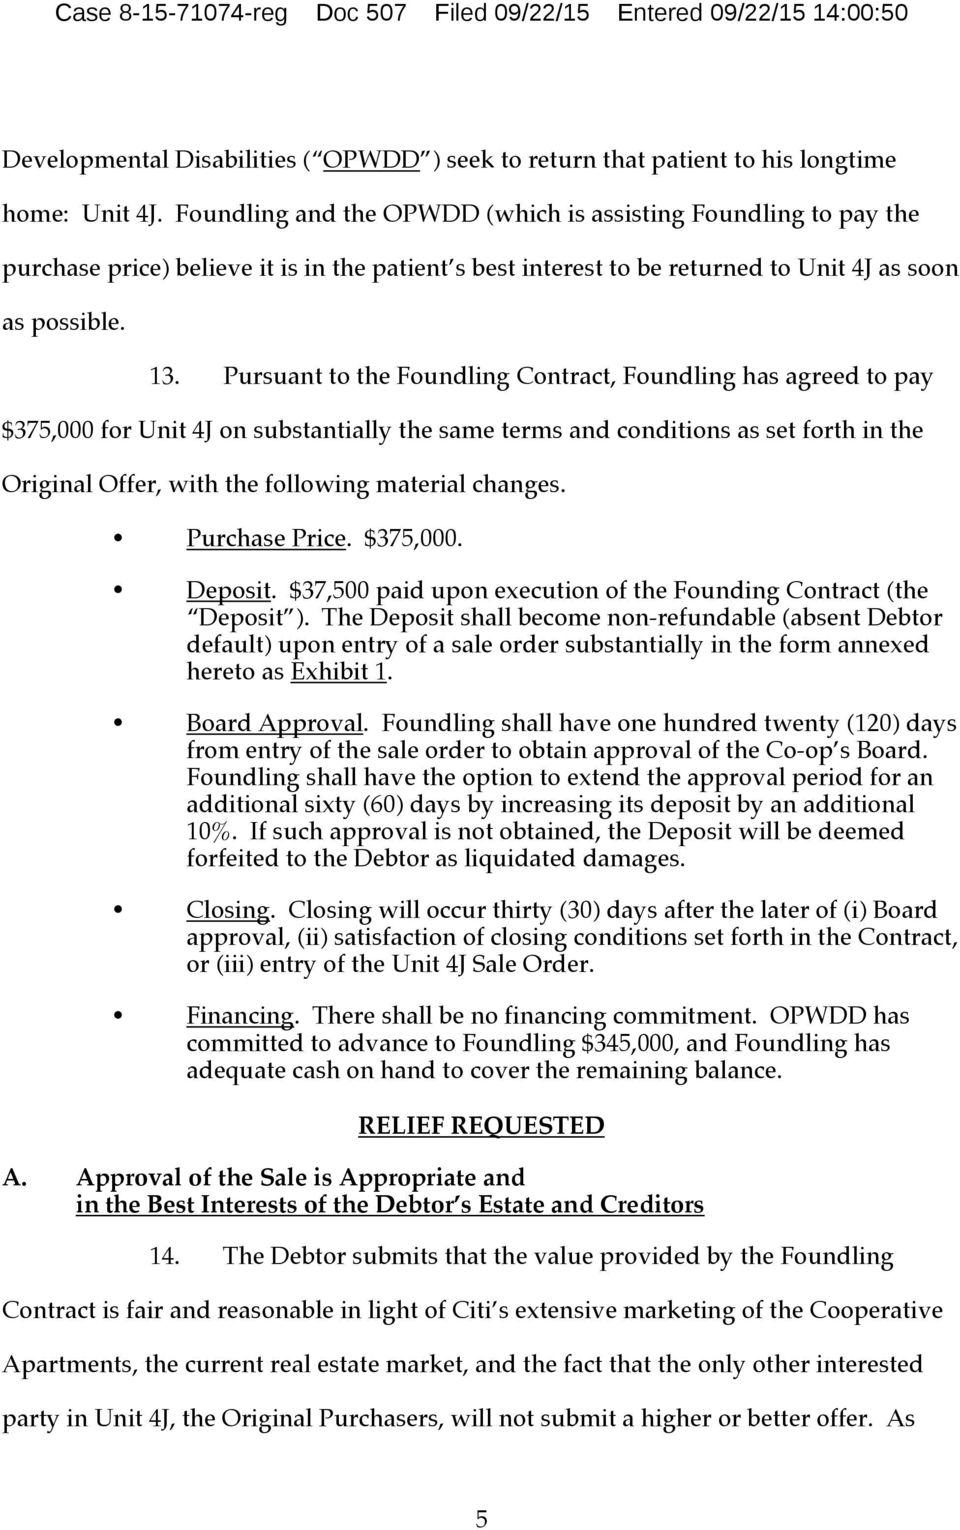 Pursuant to the Foundling Contract, Foundling has agreed to pay $375,000 for Unit 4J on substantially the same terms and conditions as set forth in the Original Offer, with the following material